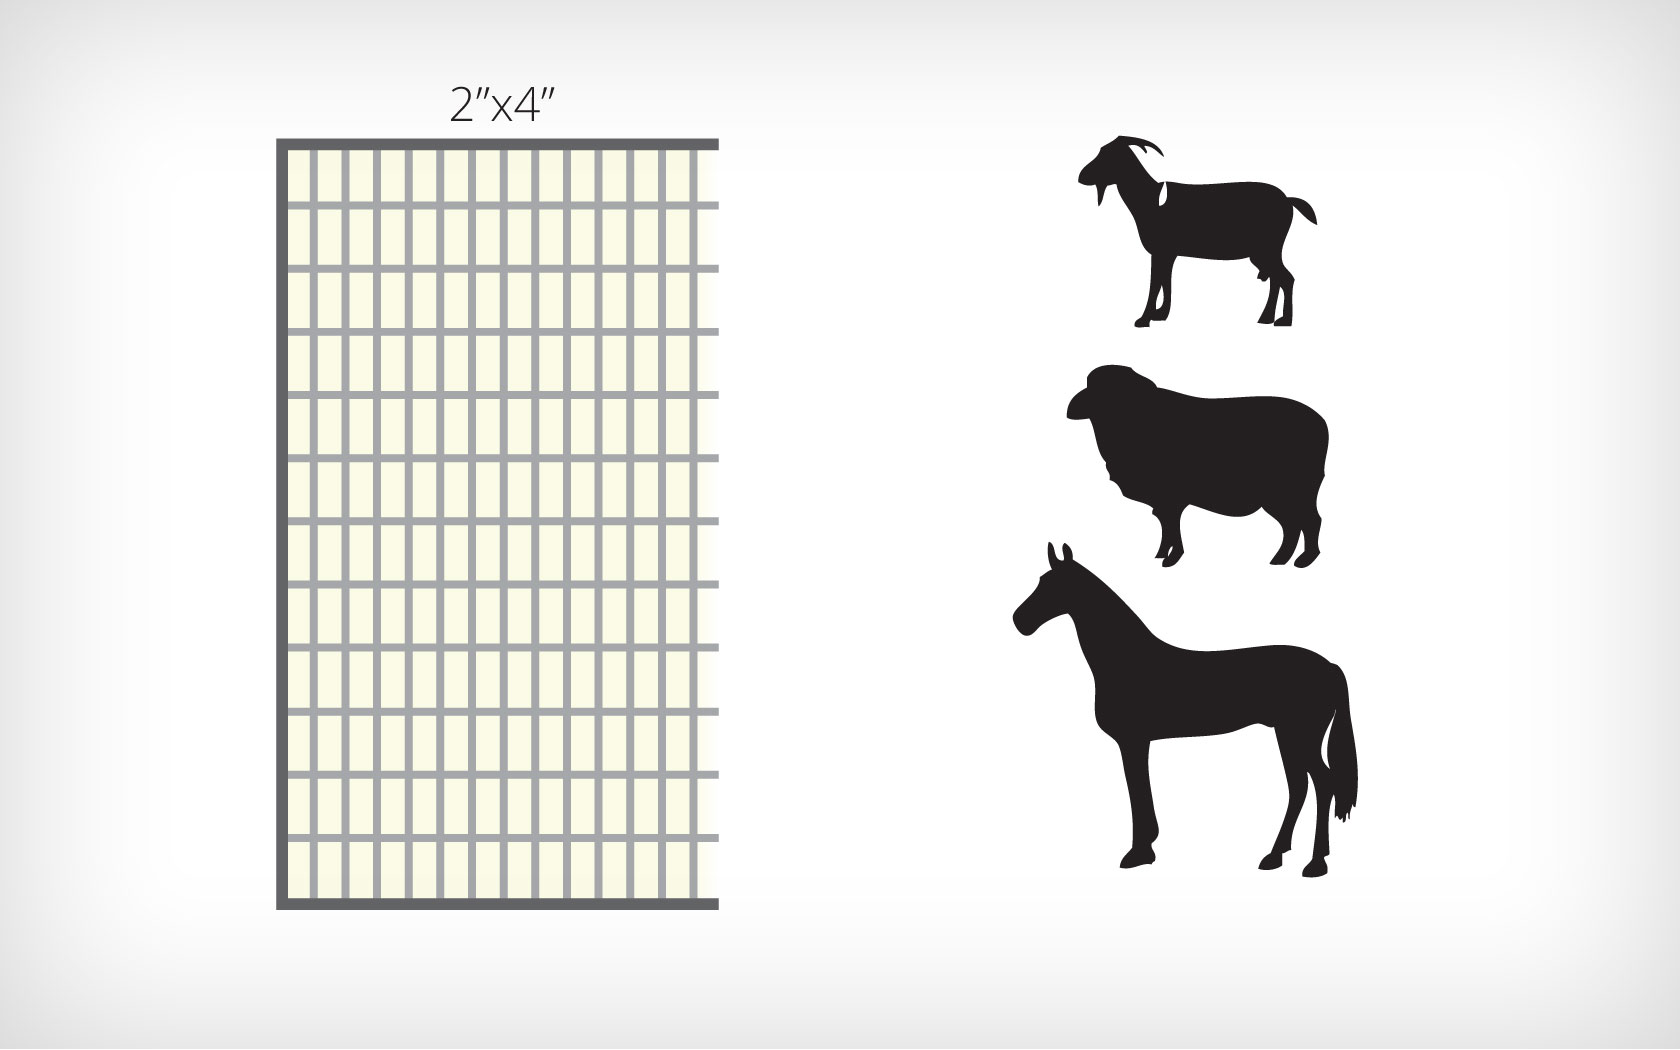 2 X4 Horse Sheep And Goat Panels 16ft X 52